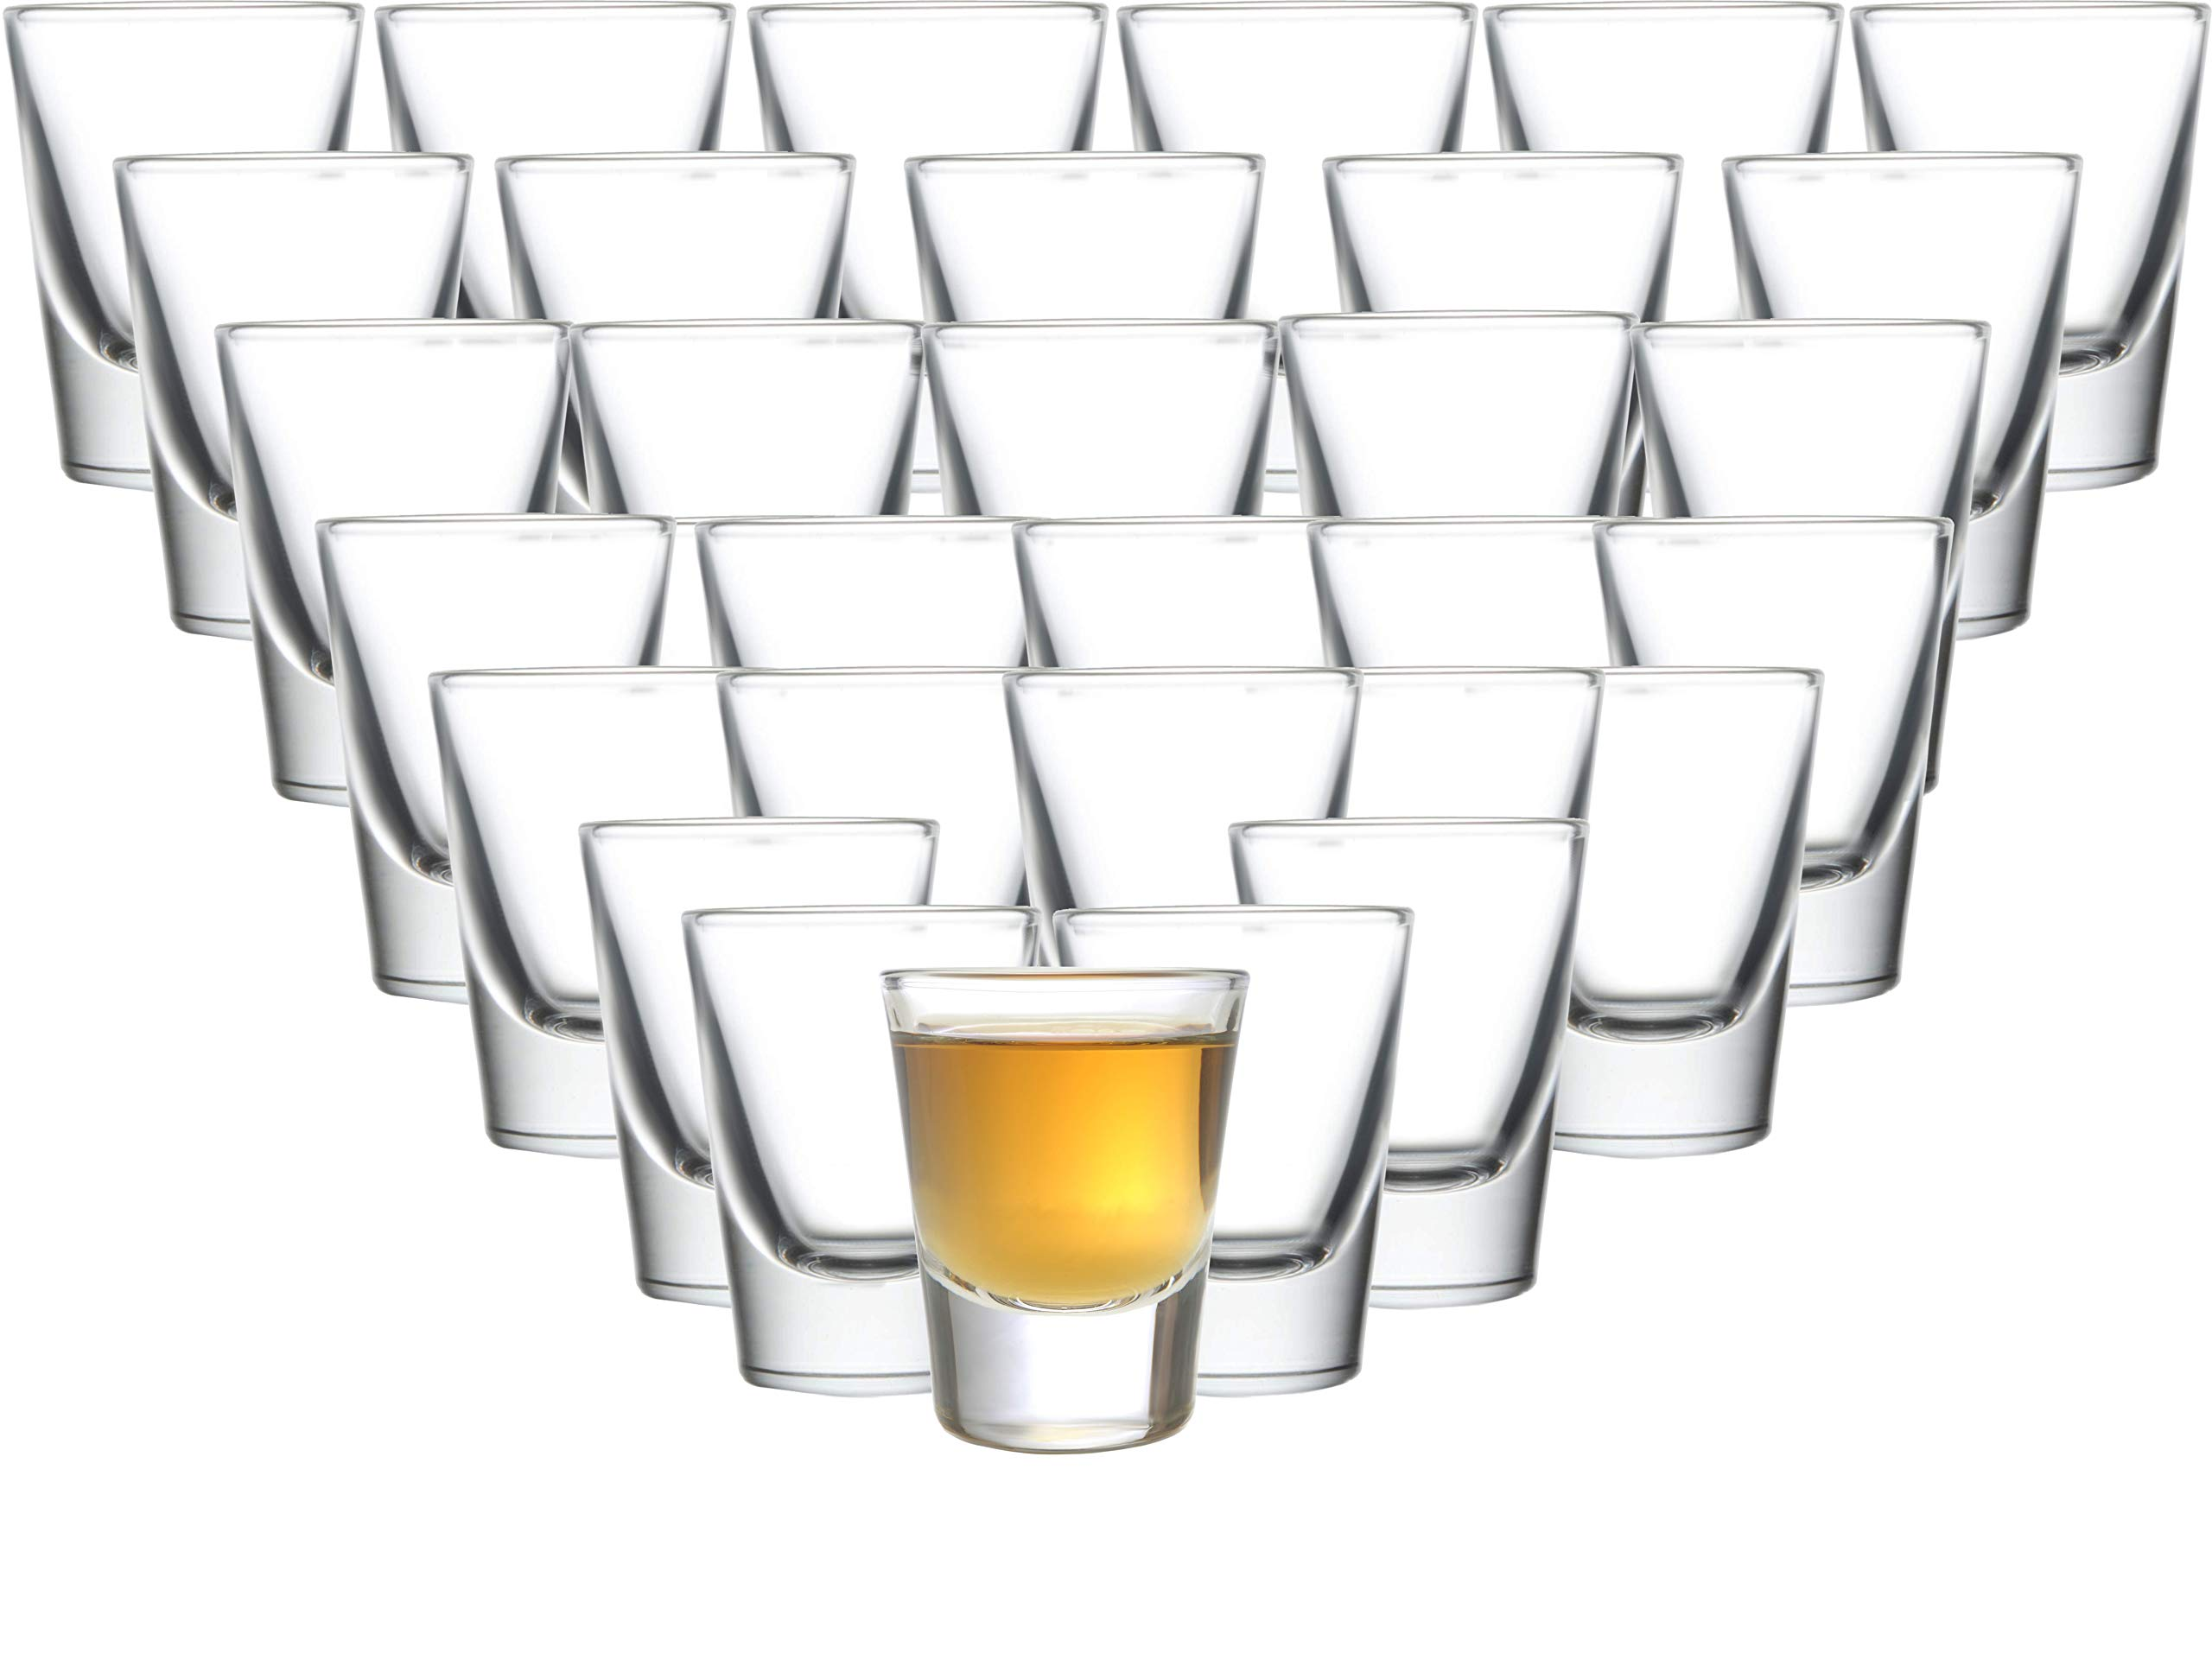 Circleware 042735 Huge Set of 36, Austria Shot Heavy Base Drinking Whiskey Glass Glassware Cups for Vodka, Brandy, Bourbon & Best Selling Liquor Beverages, Limited Edition, 36pc by Circleware (Image #1)